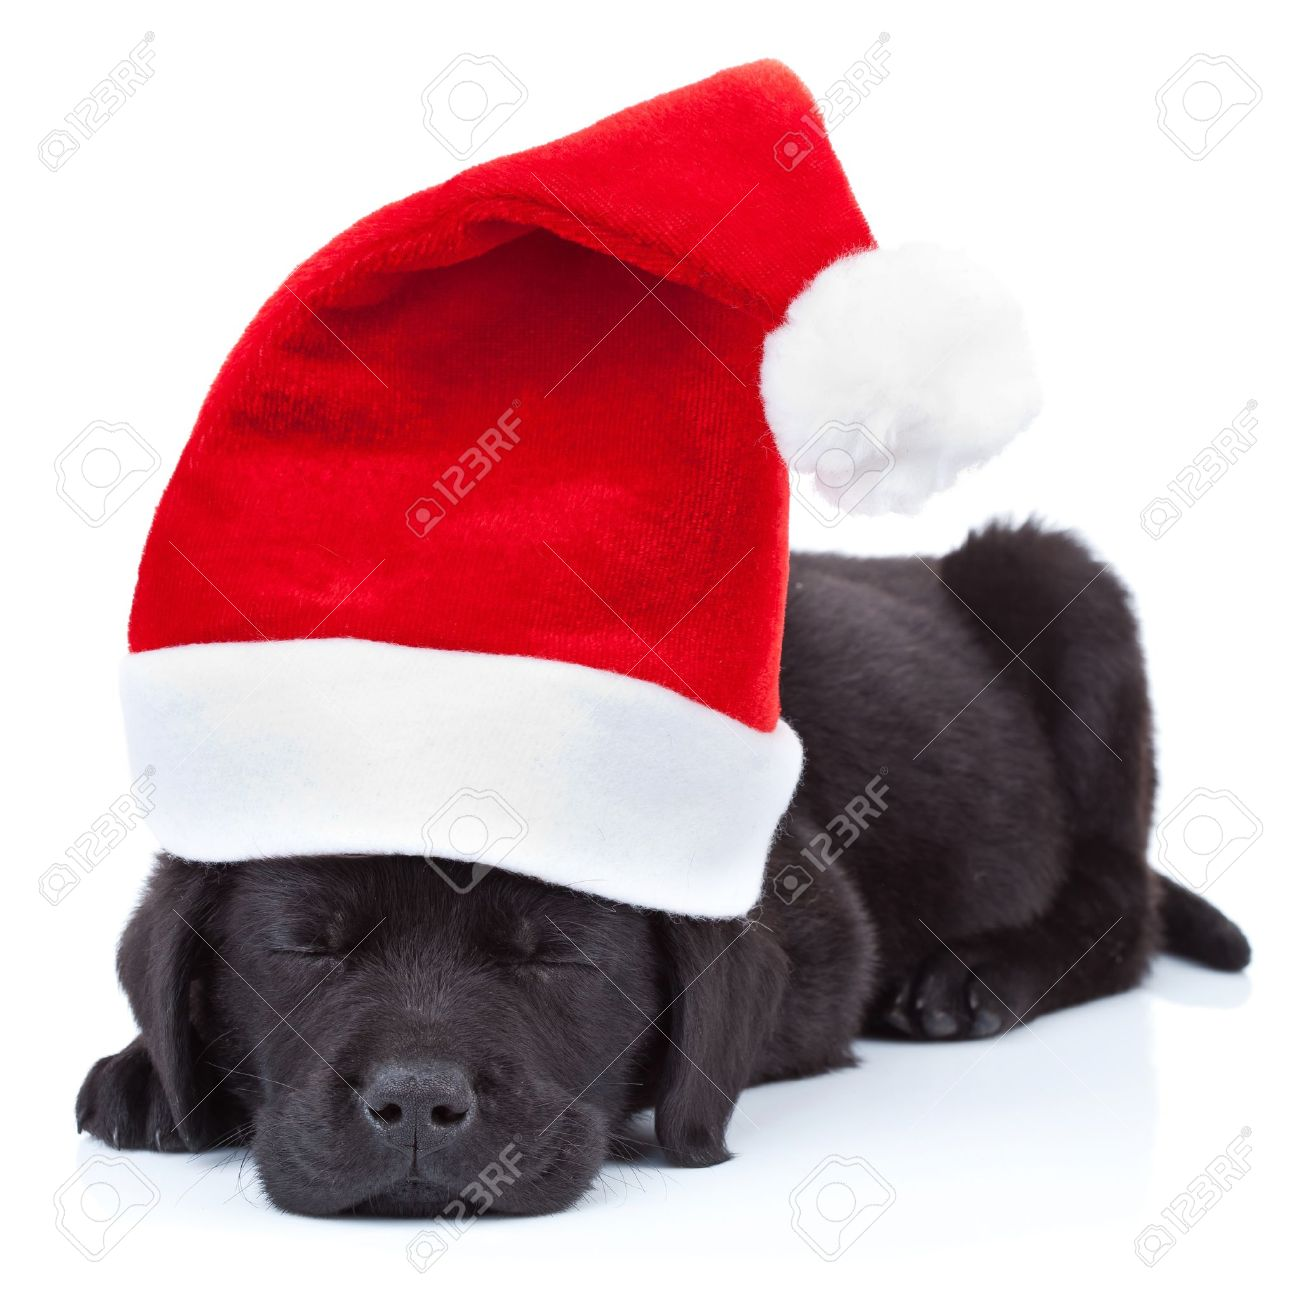 Cute Little Santa Black Labrador Puppy Sleeping On White Background Stock Photo Picture And Royalty Free Image Image 10520941